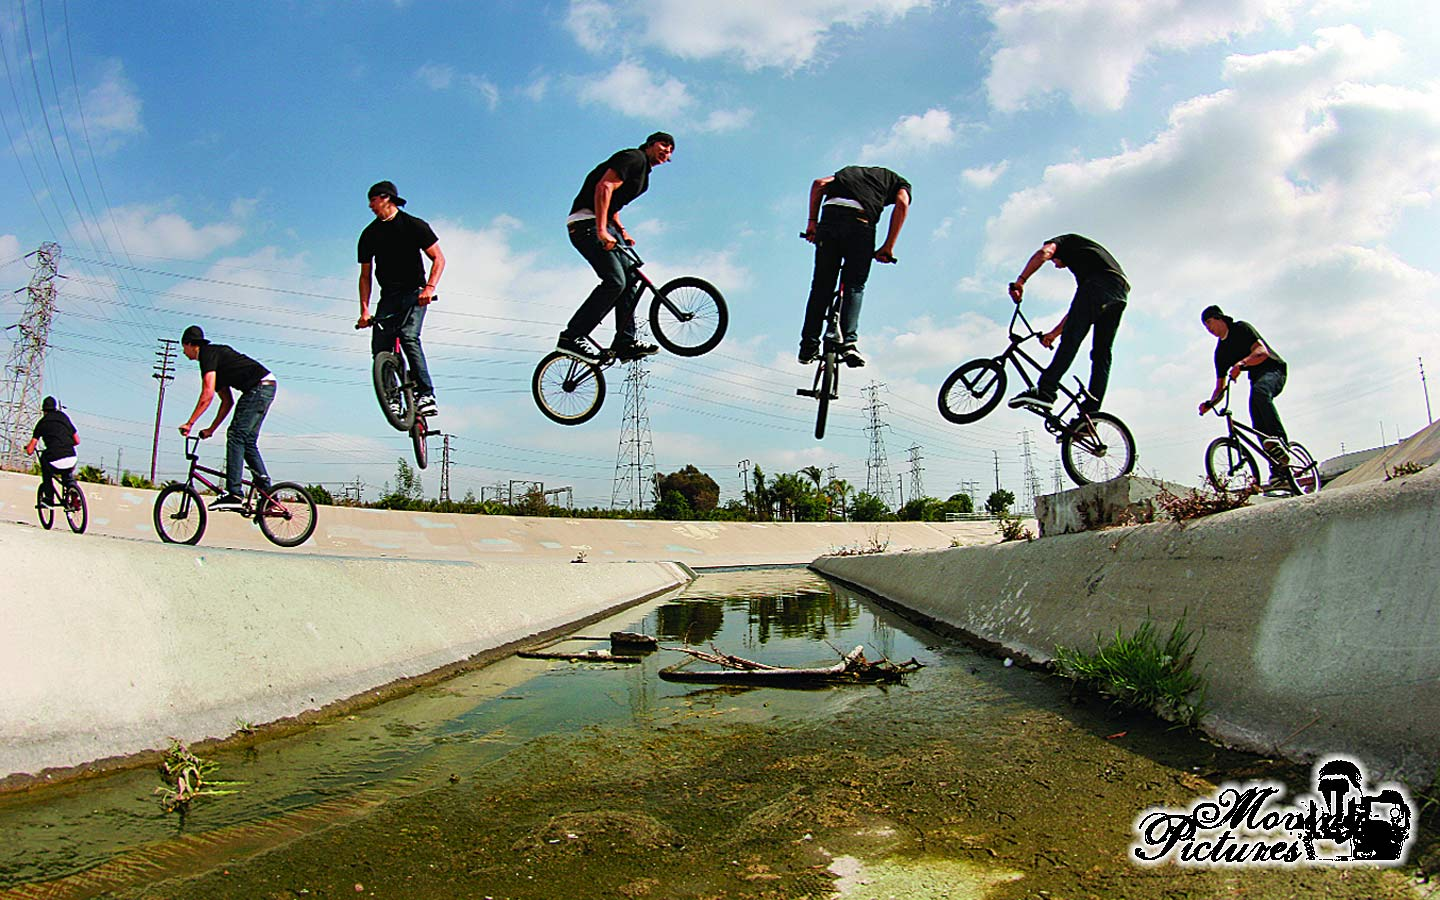 BMX Entertainment - a MUST for any event! www.streets-united.com ...